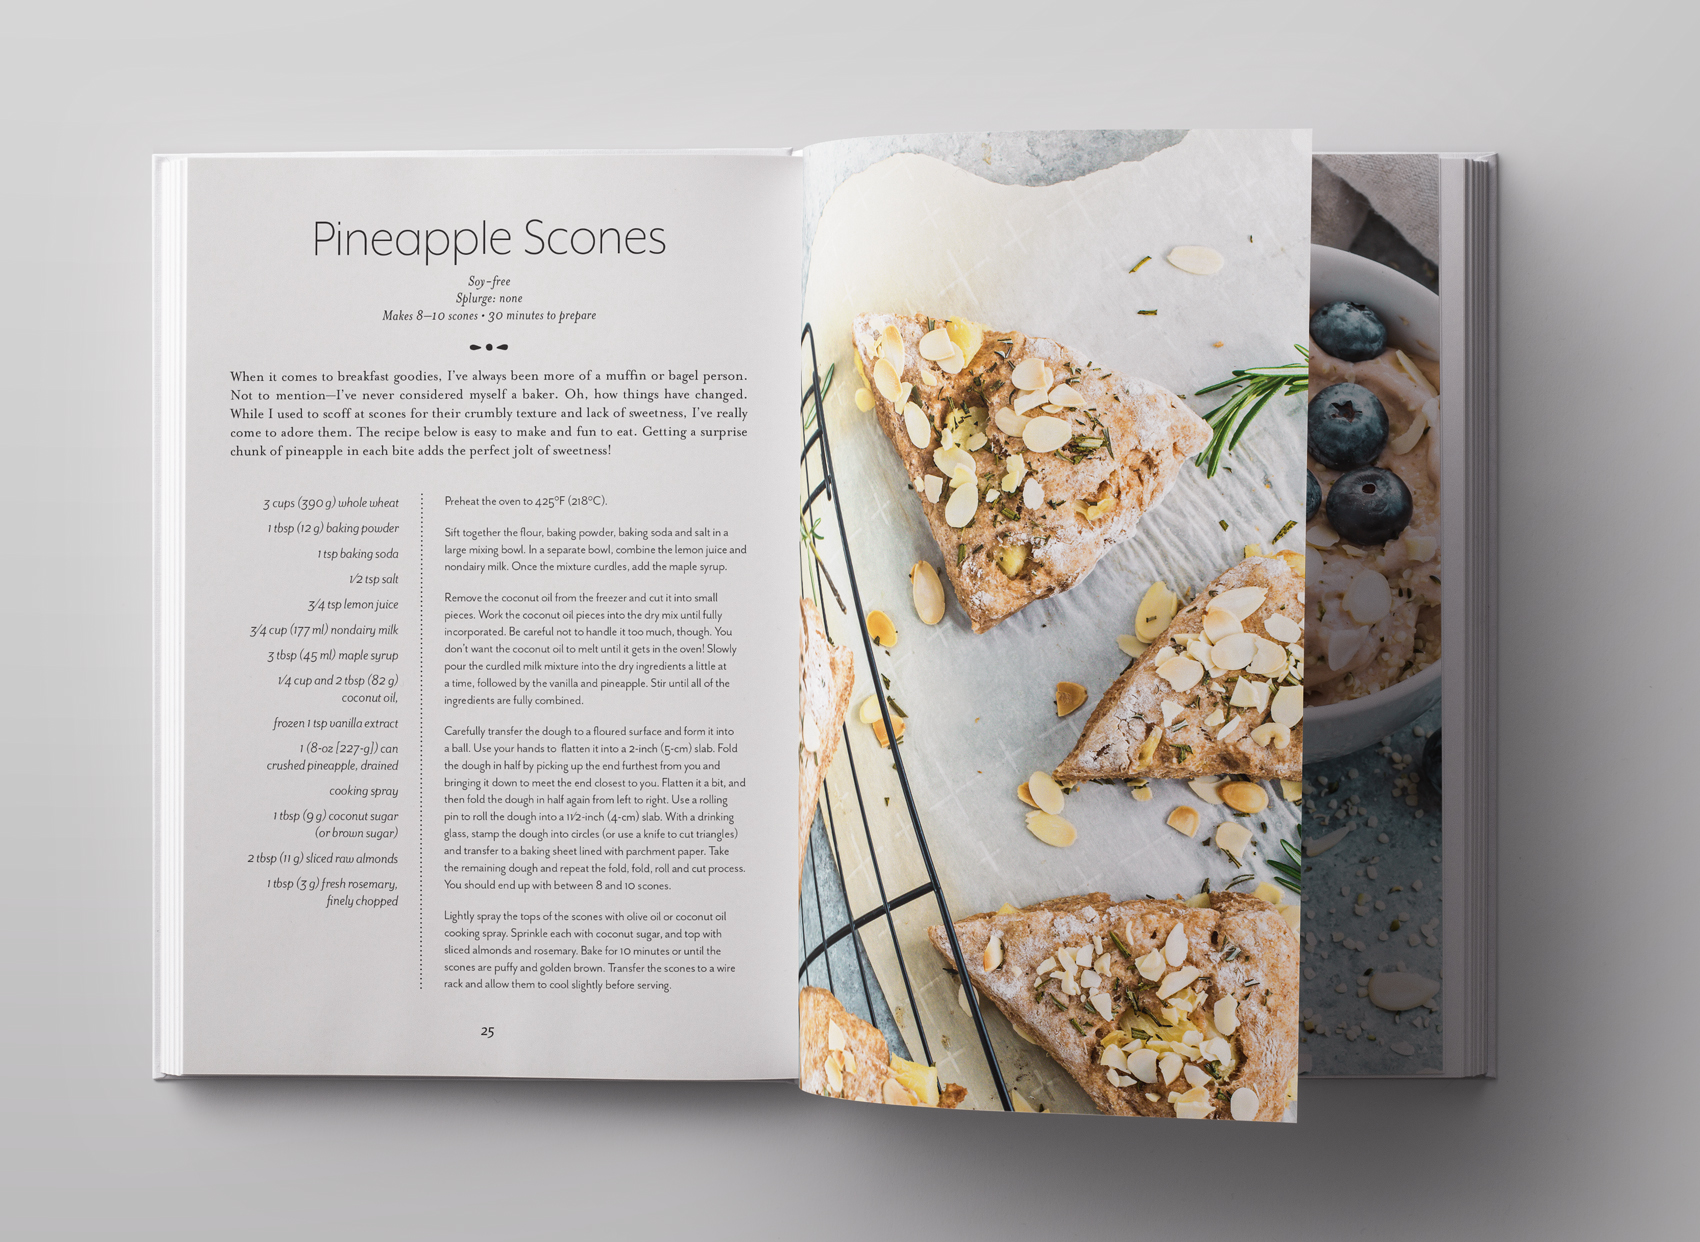 vegan pineapple scone recipe spread for Frugal Vegan cook book